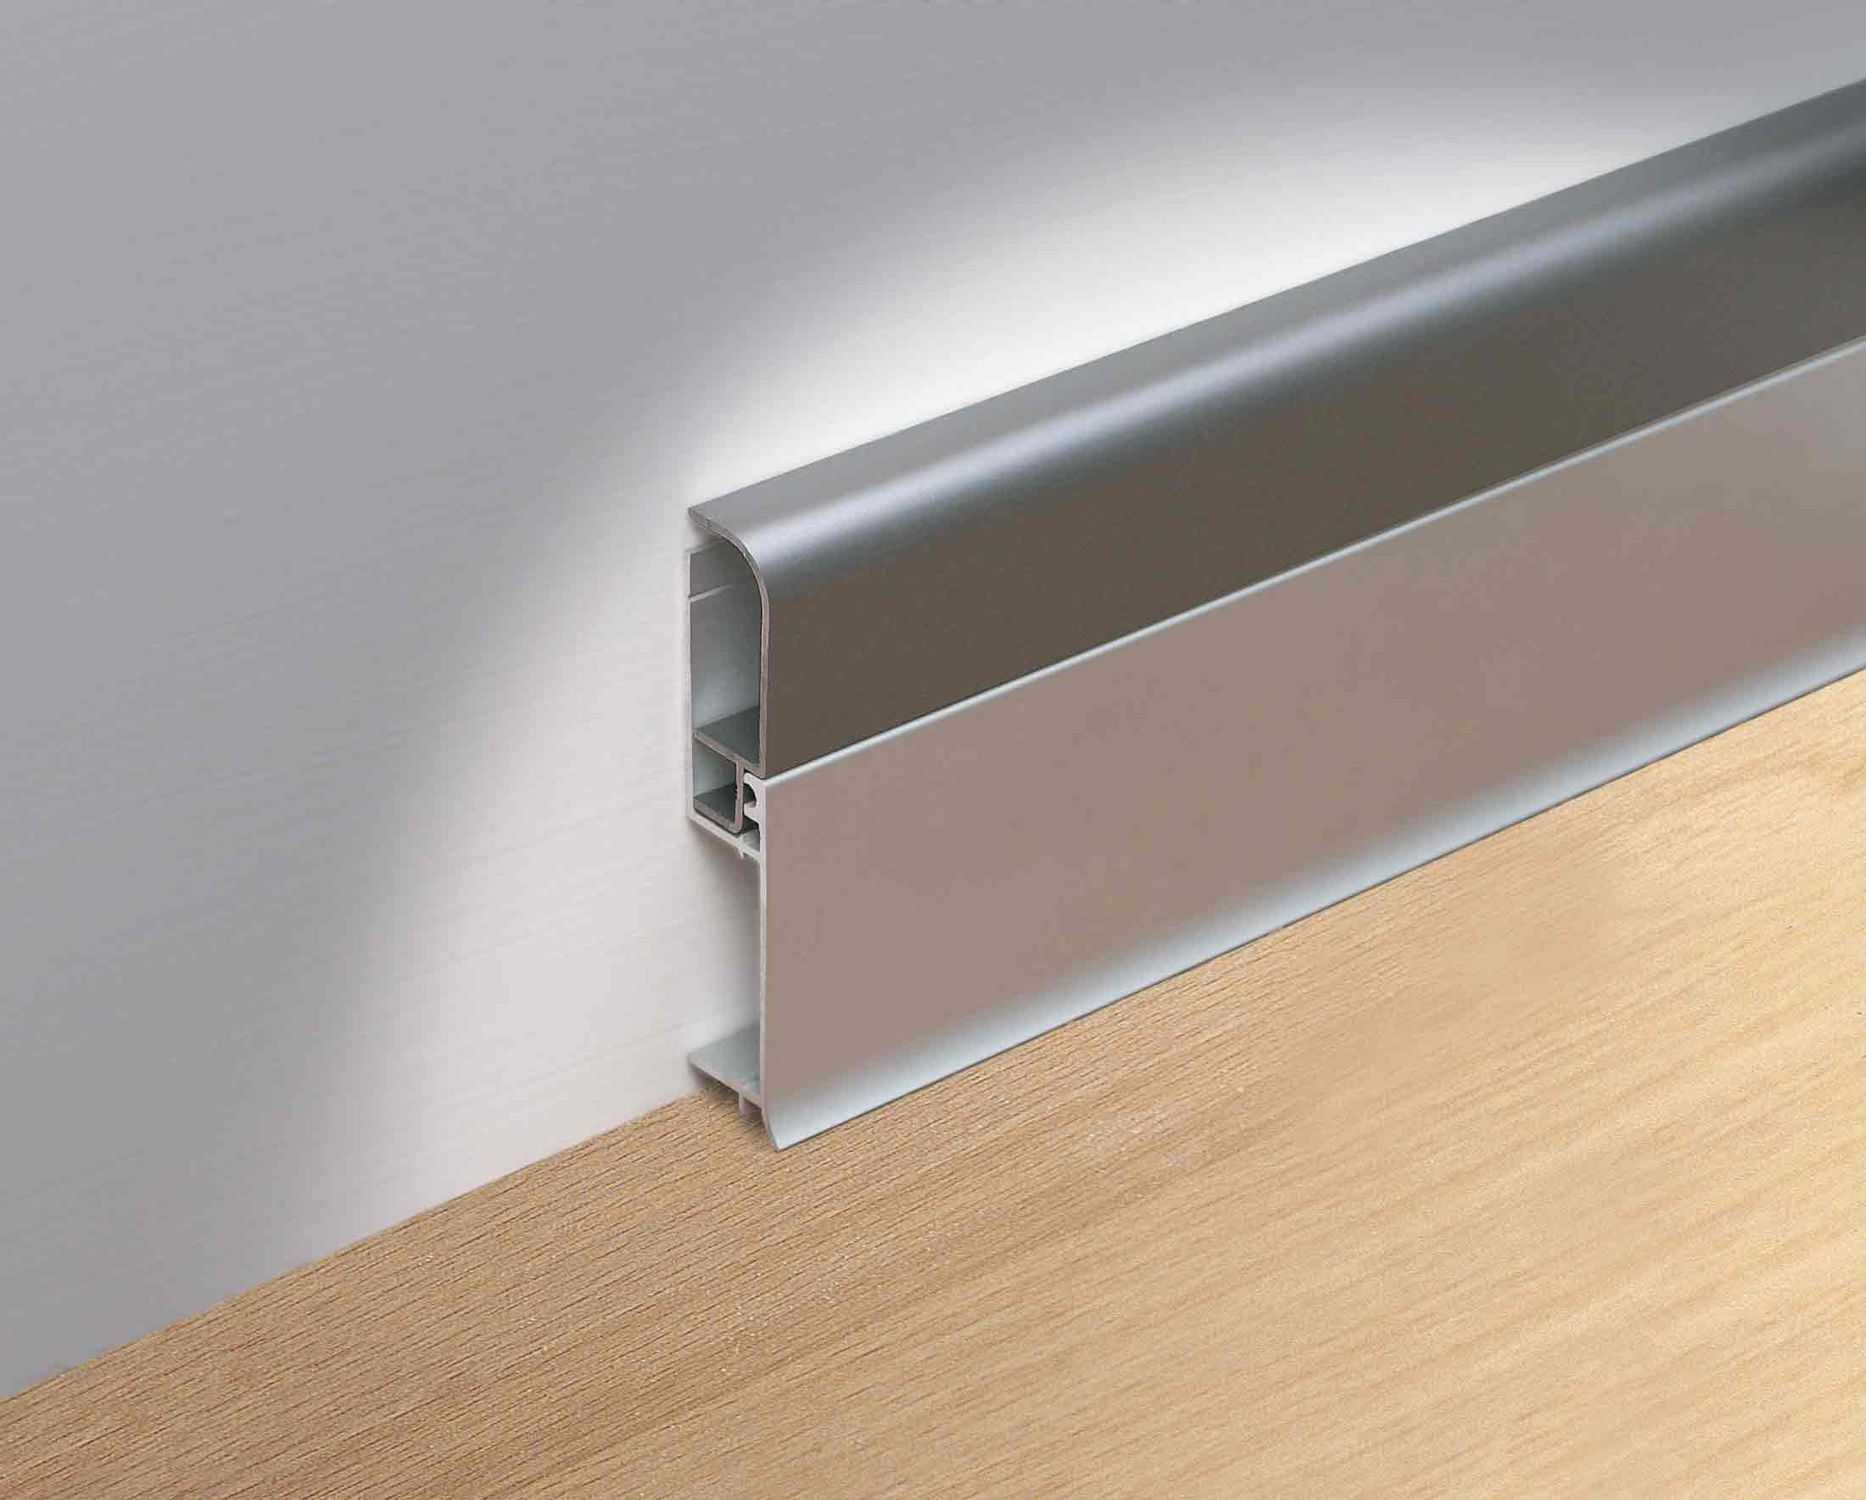 Aluminum baseboard for electrical wiring